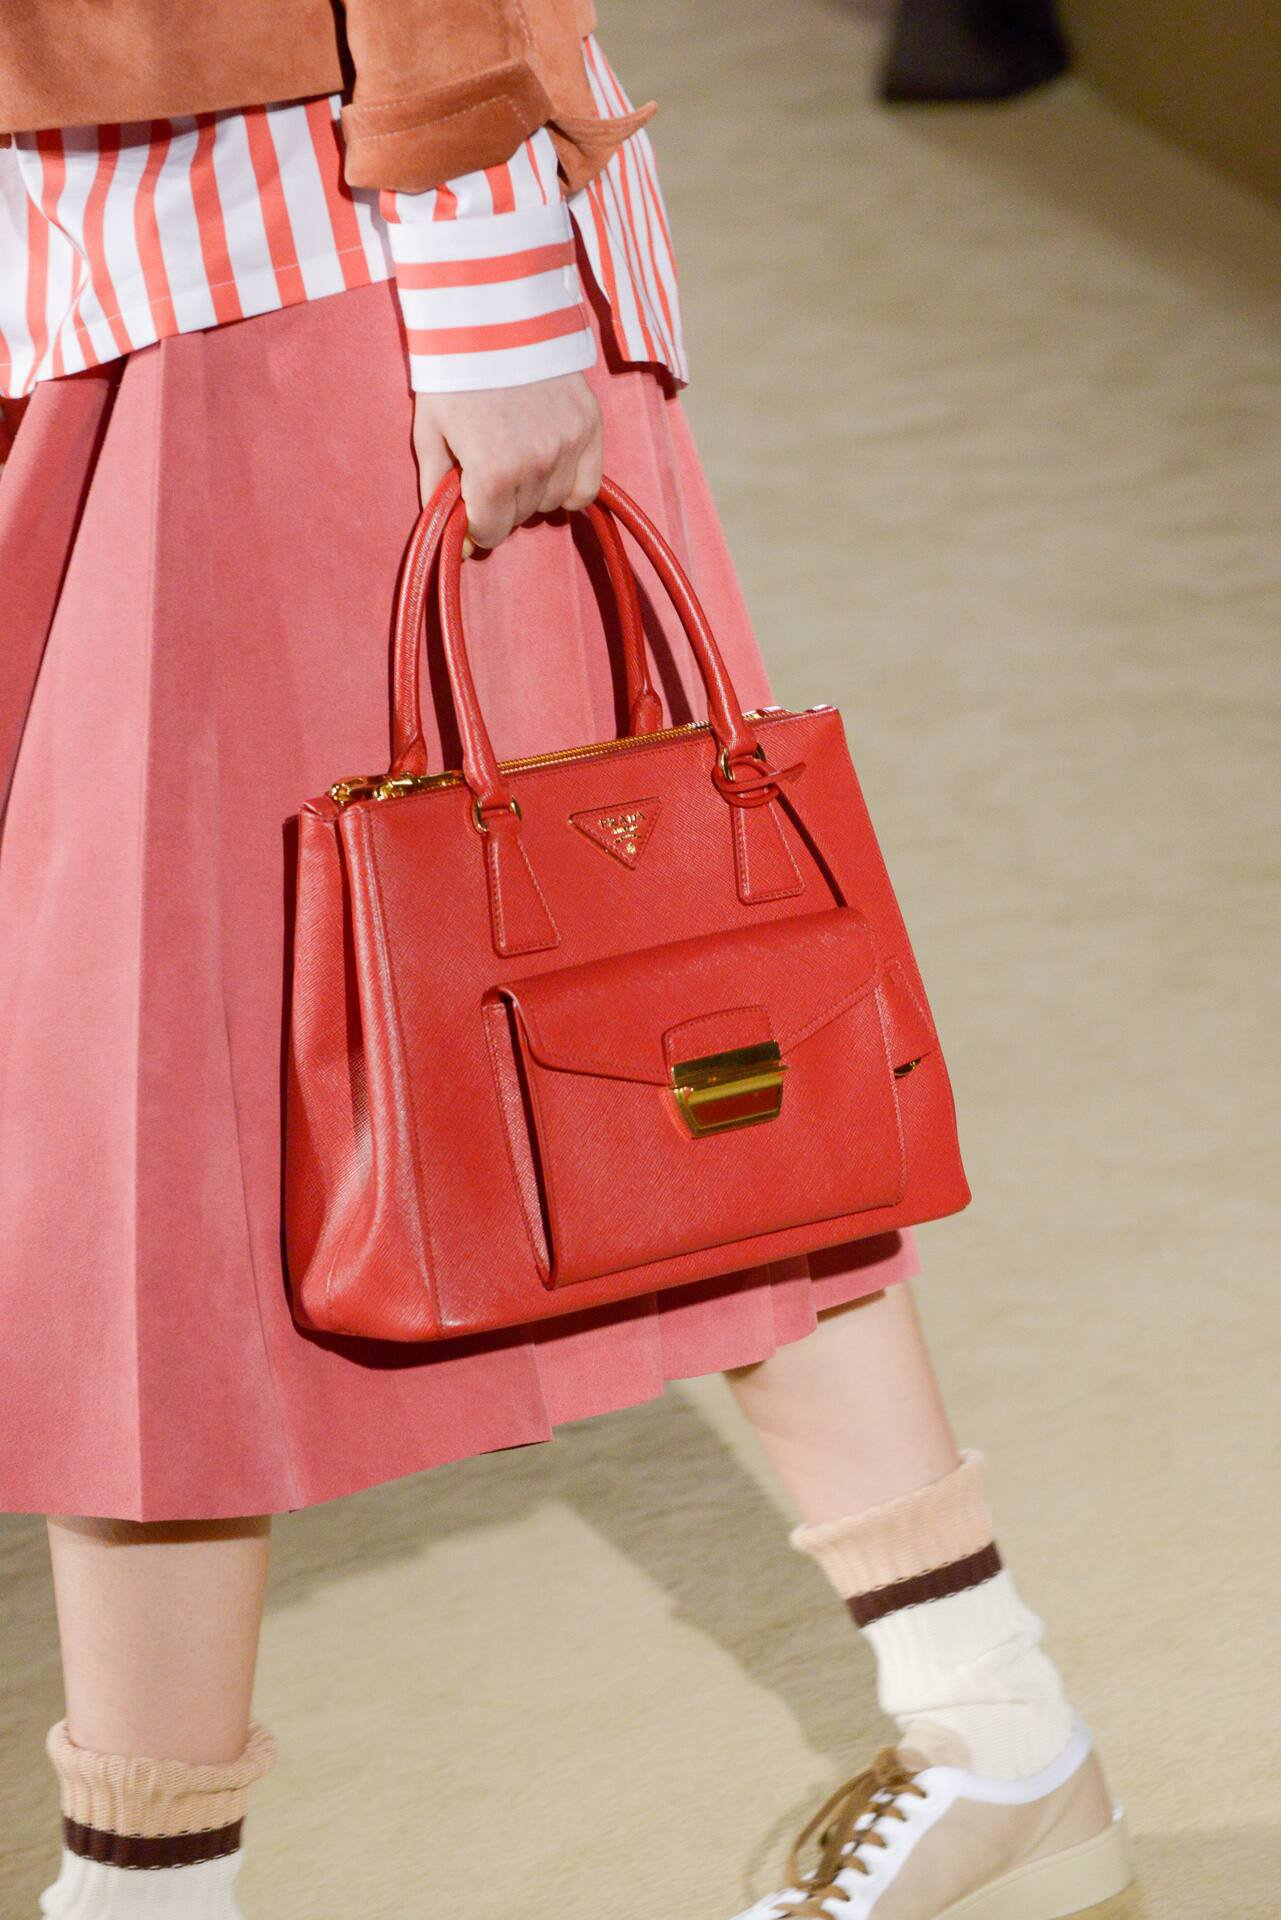 Prada Cruise Bag Collection Preview